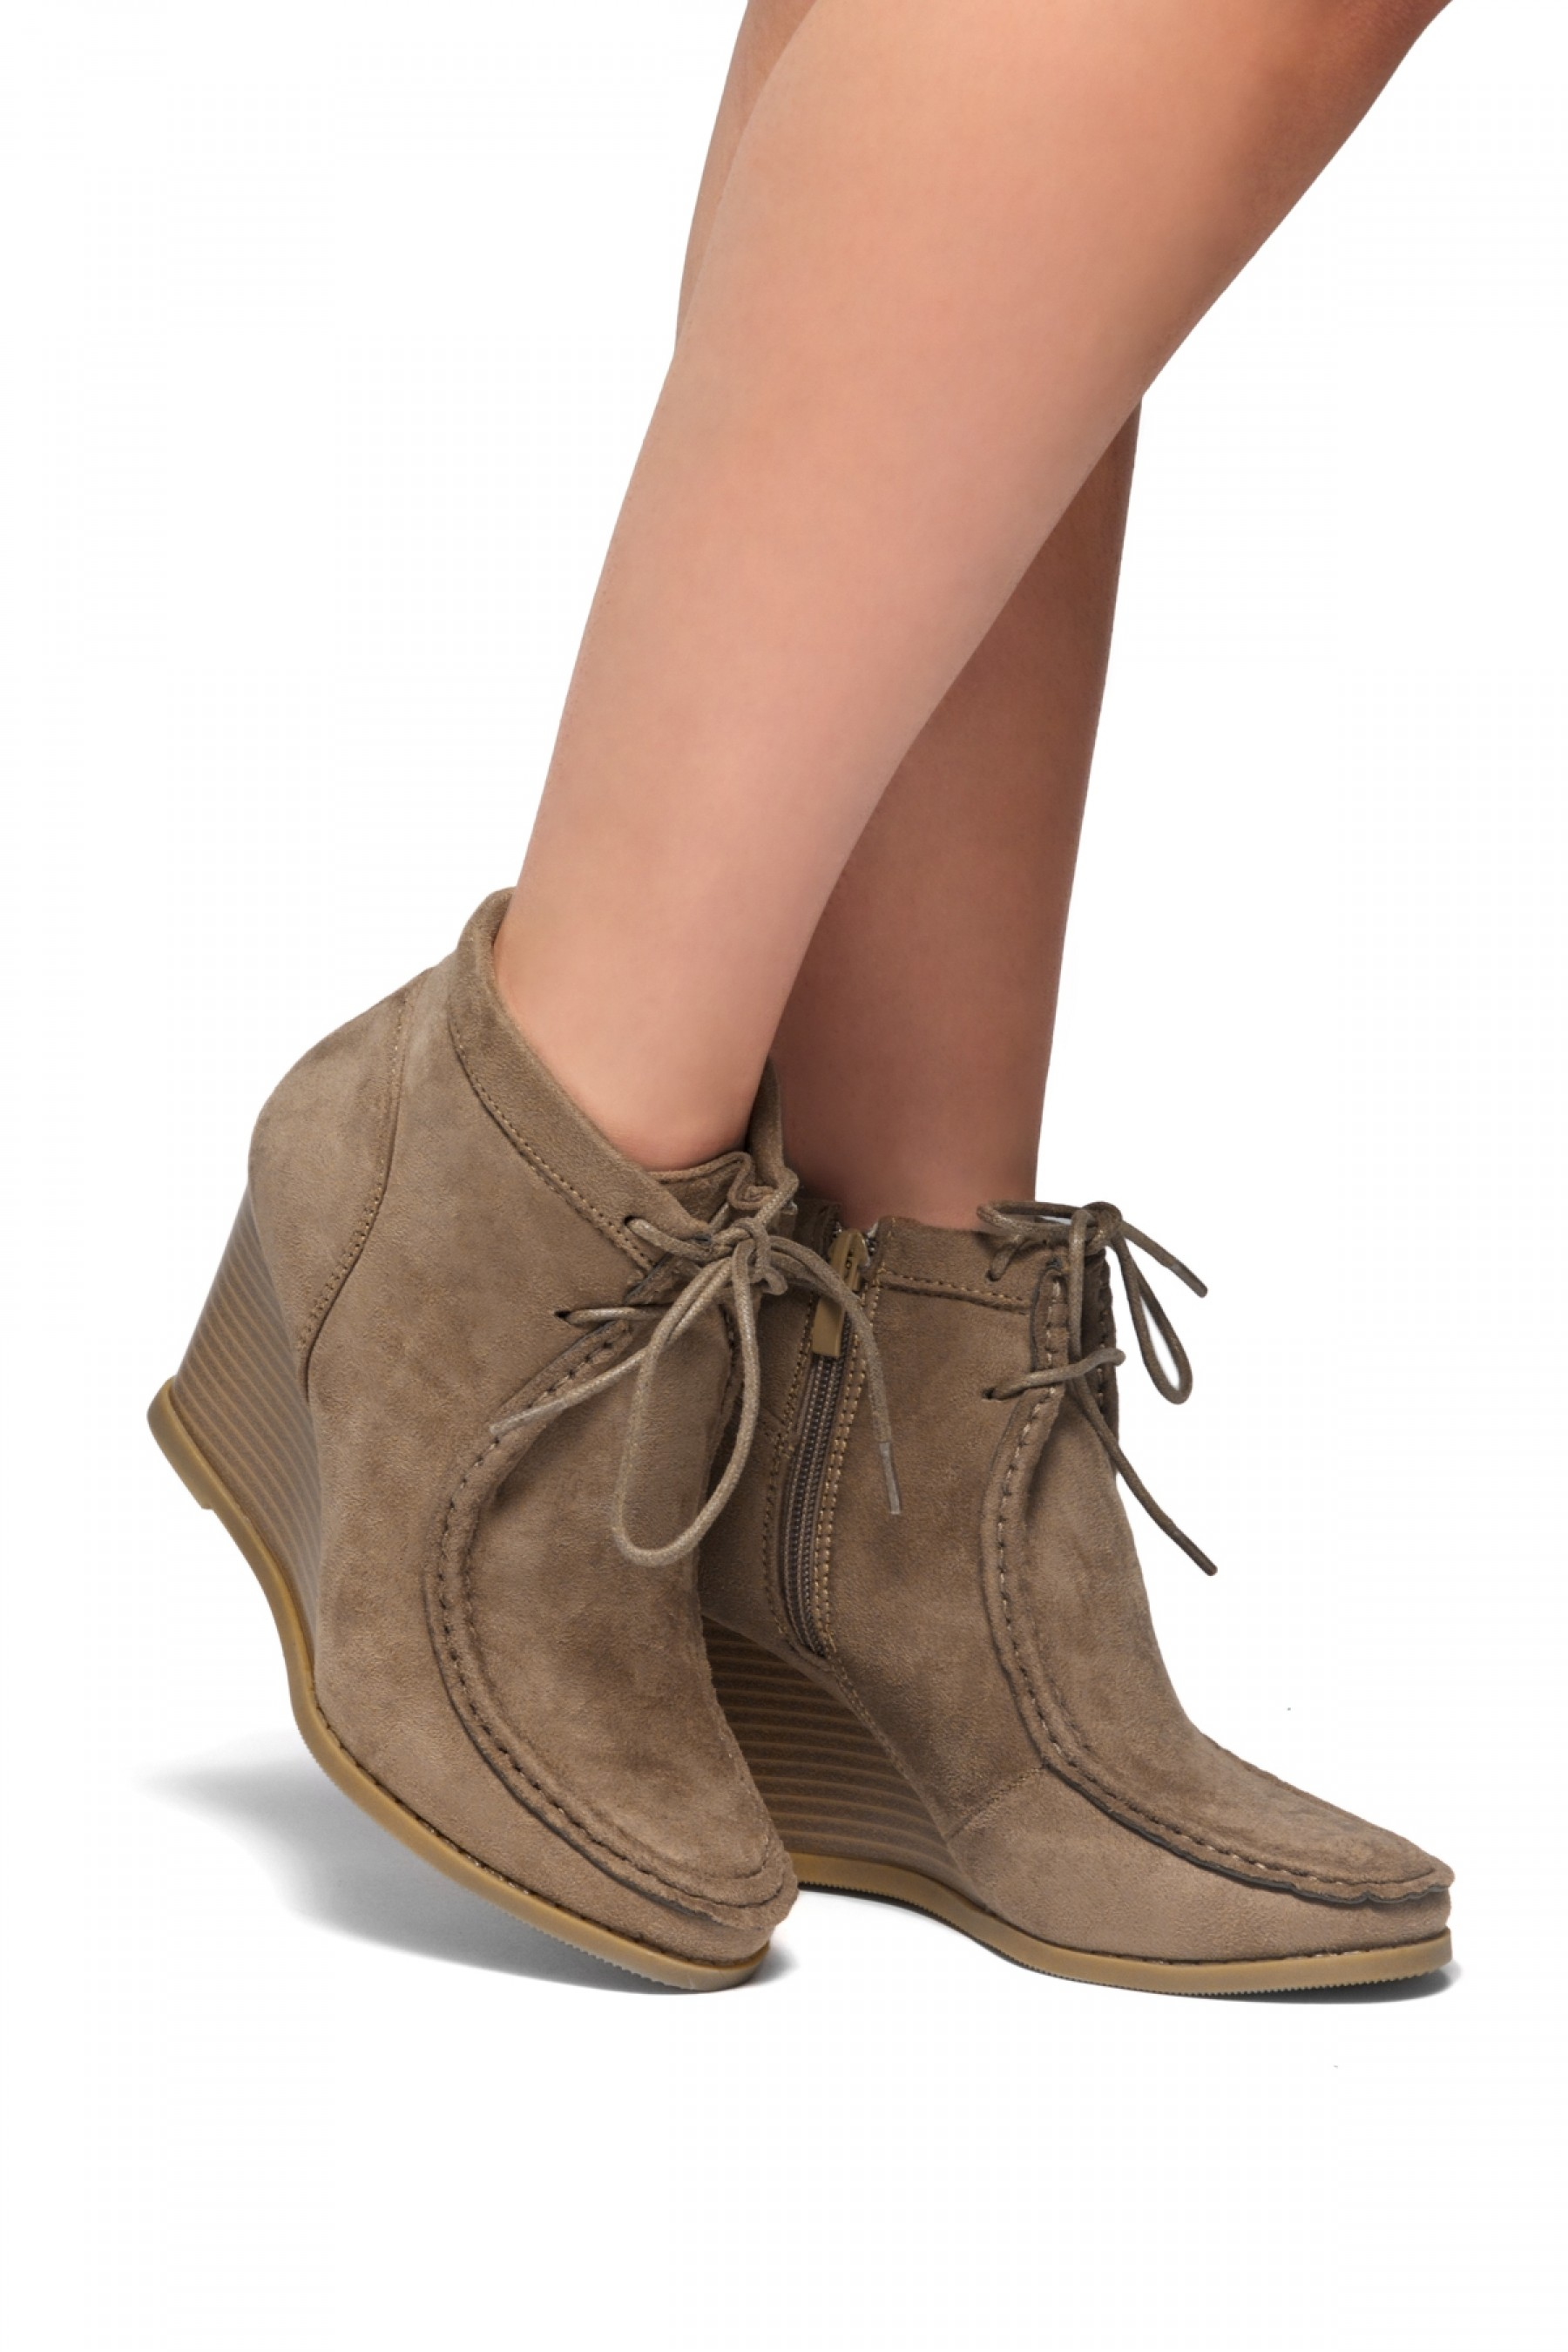 Women's Eaddy Ysabel Lace-up Wedge Chukka Boot - Khaki